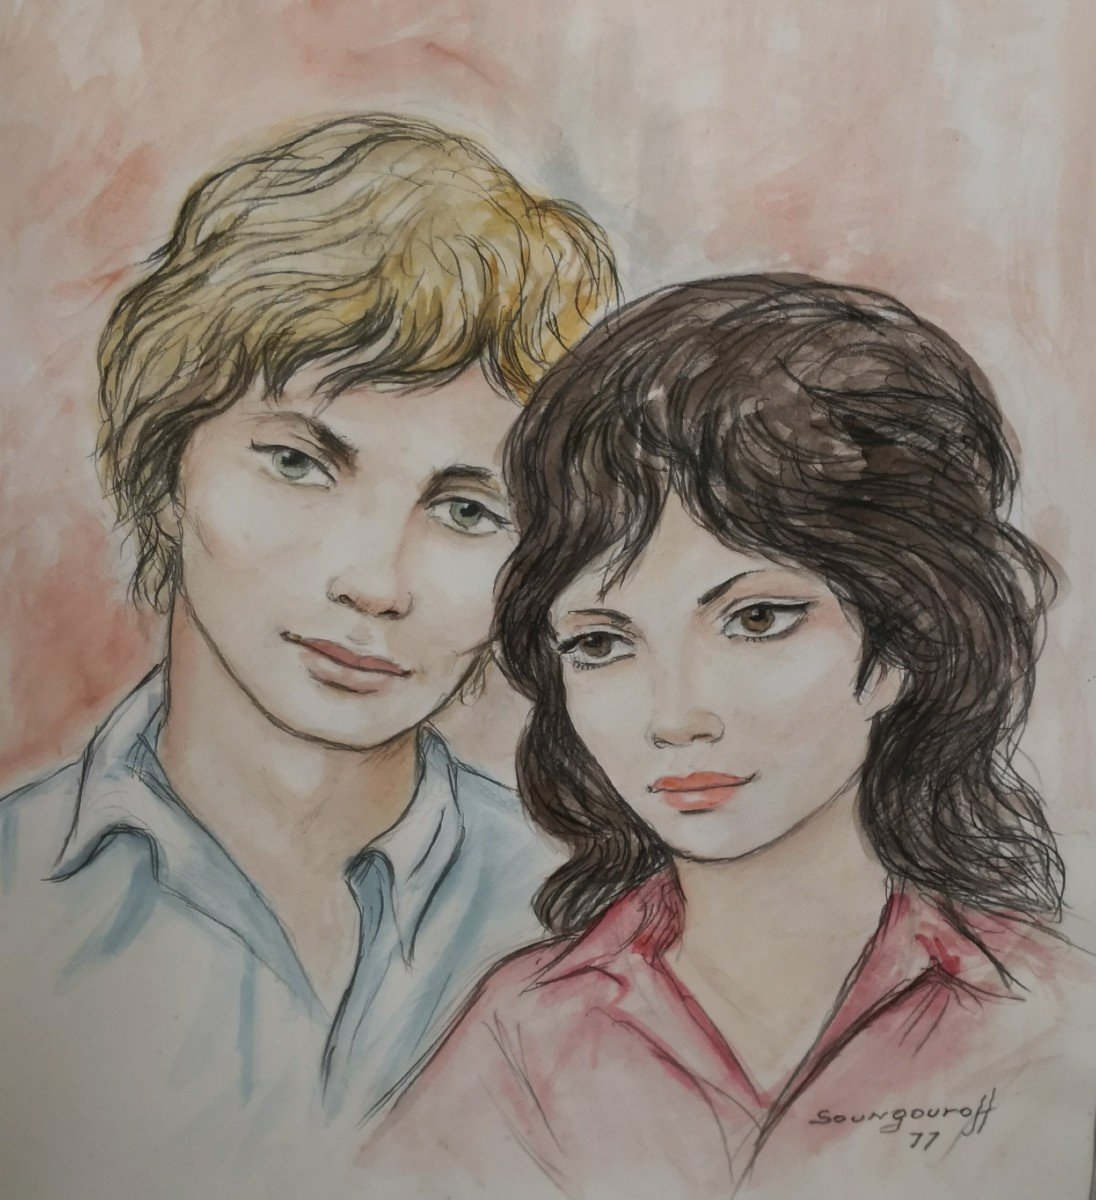 Watercolor Drawing Couple Signed And Dated Soungouroff 1977-photo-2